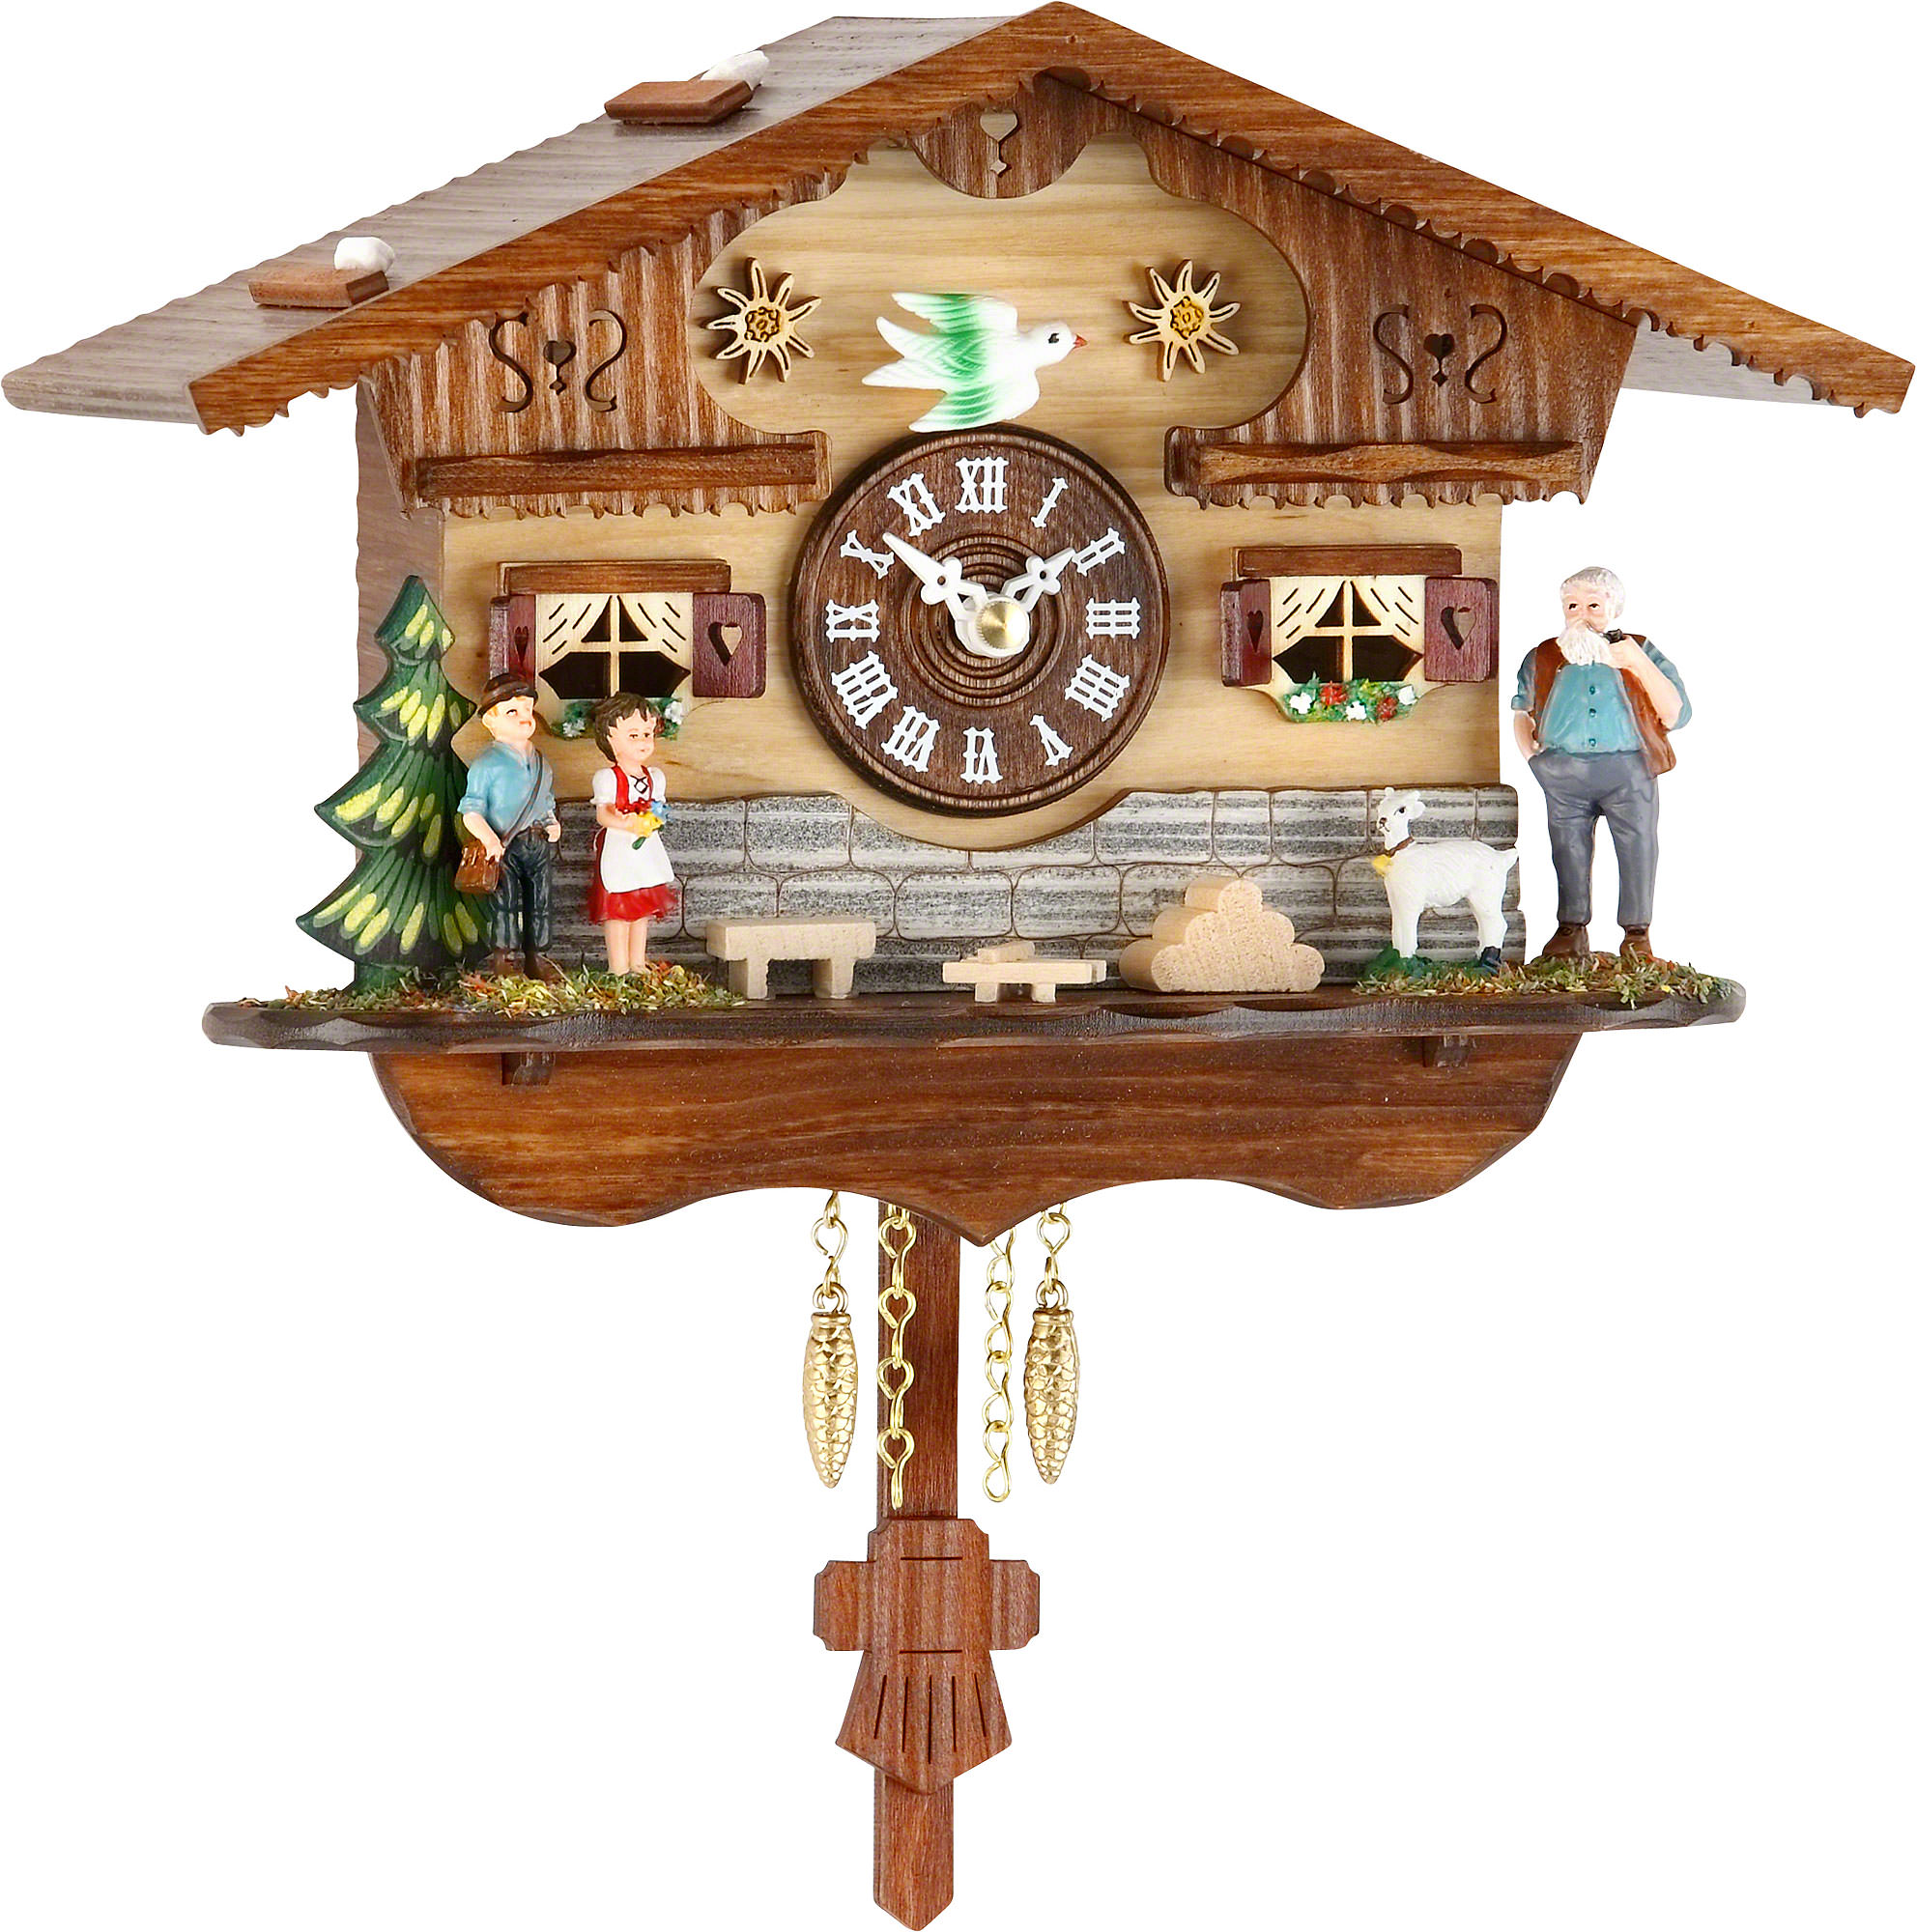 Cuckoo clock quartz movement black forest pendulum clock style 15cm by trenkle uhren 2042pq - Cuckoo clock pendulum ...